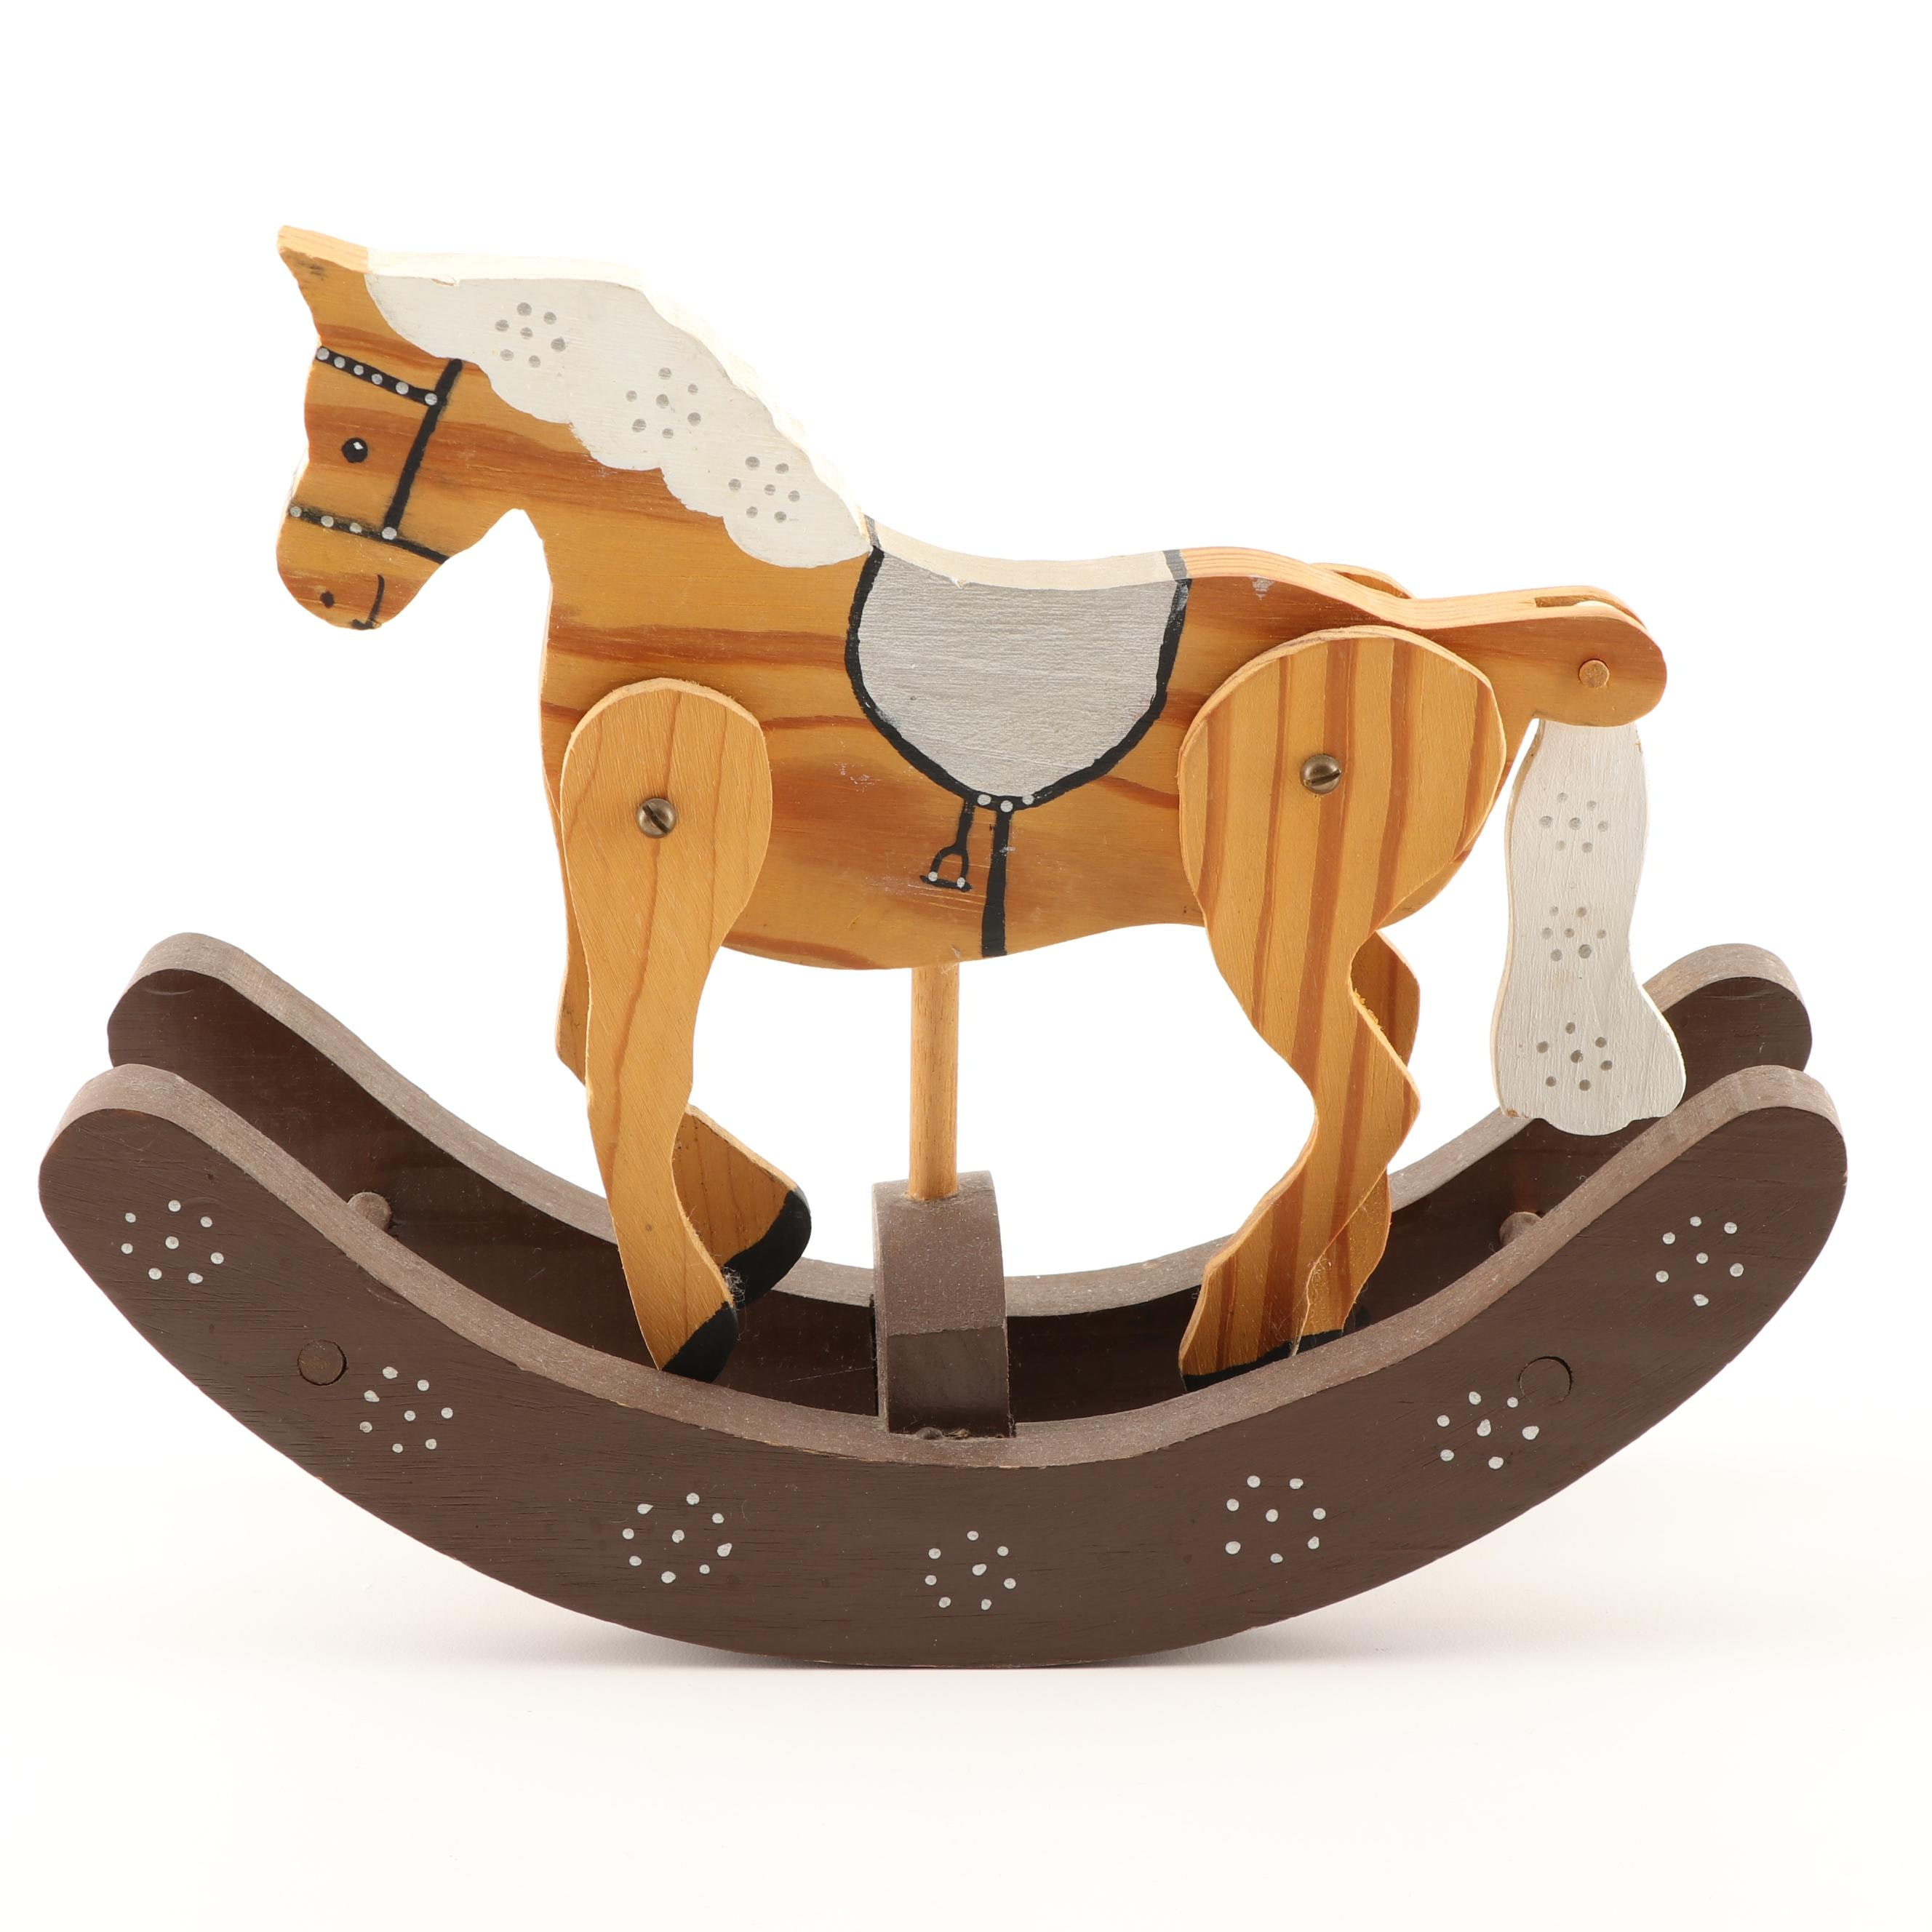 Vintage Hand Painted Wooden Rocking Horse Toy